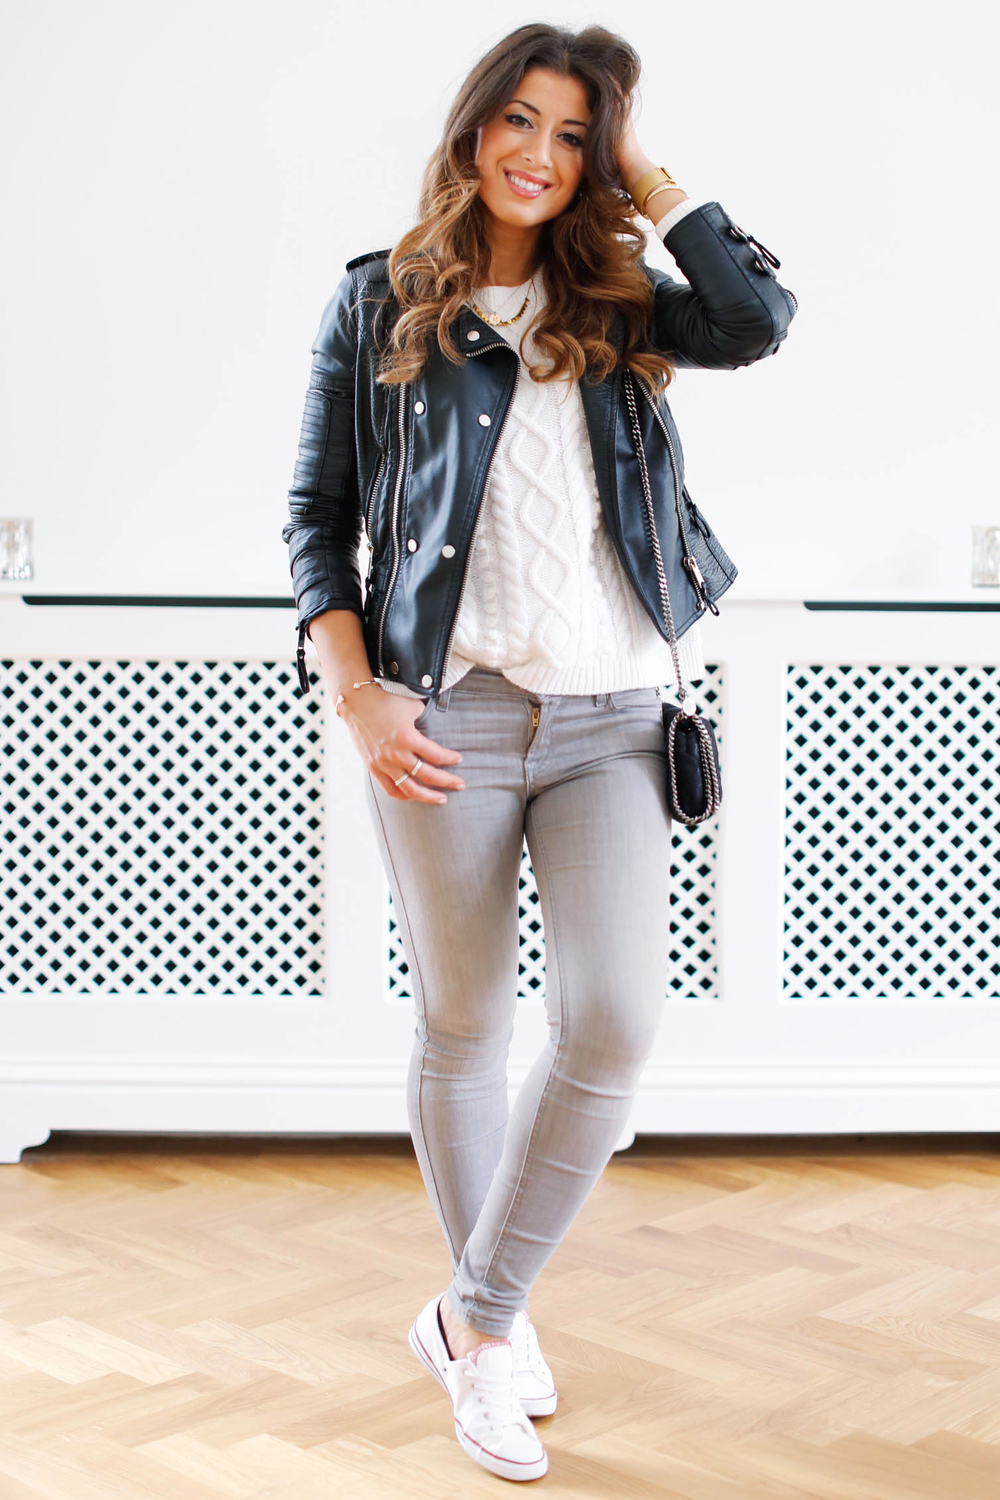 bf9d0f1678b6e In this outfit I am wearing Club Monaco sweater (similar here), 7 For All  Mankind jeans (similar here), Faux leather jacket (old - similar here), ...